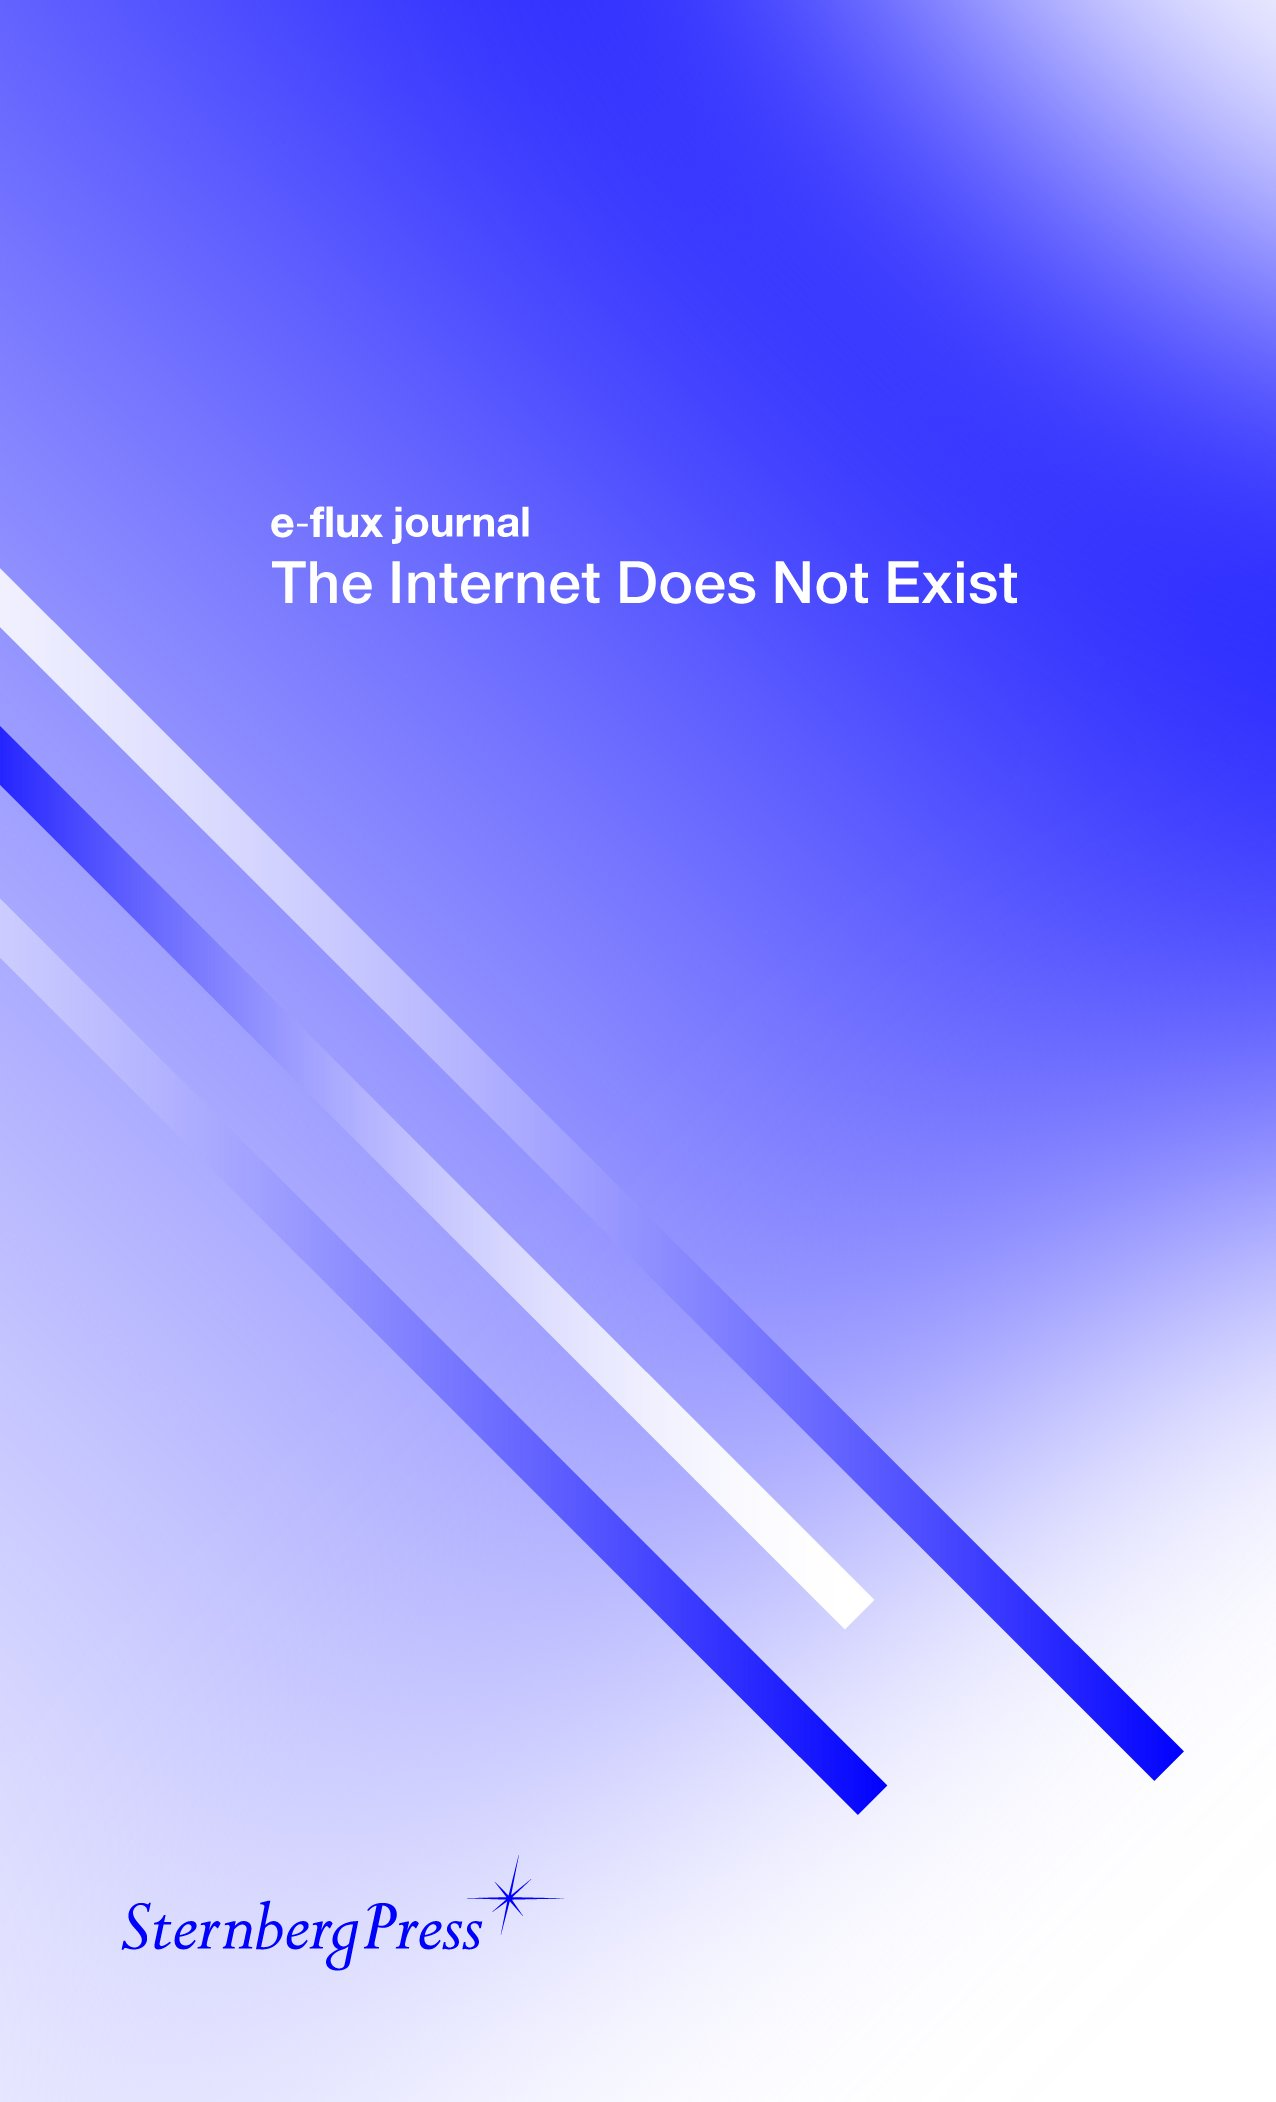 The Internet Does Not Exist, e-flux